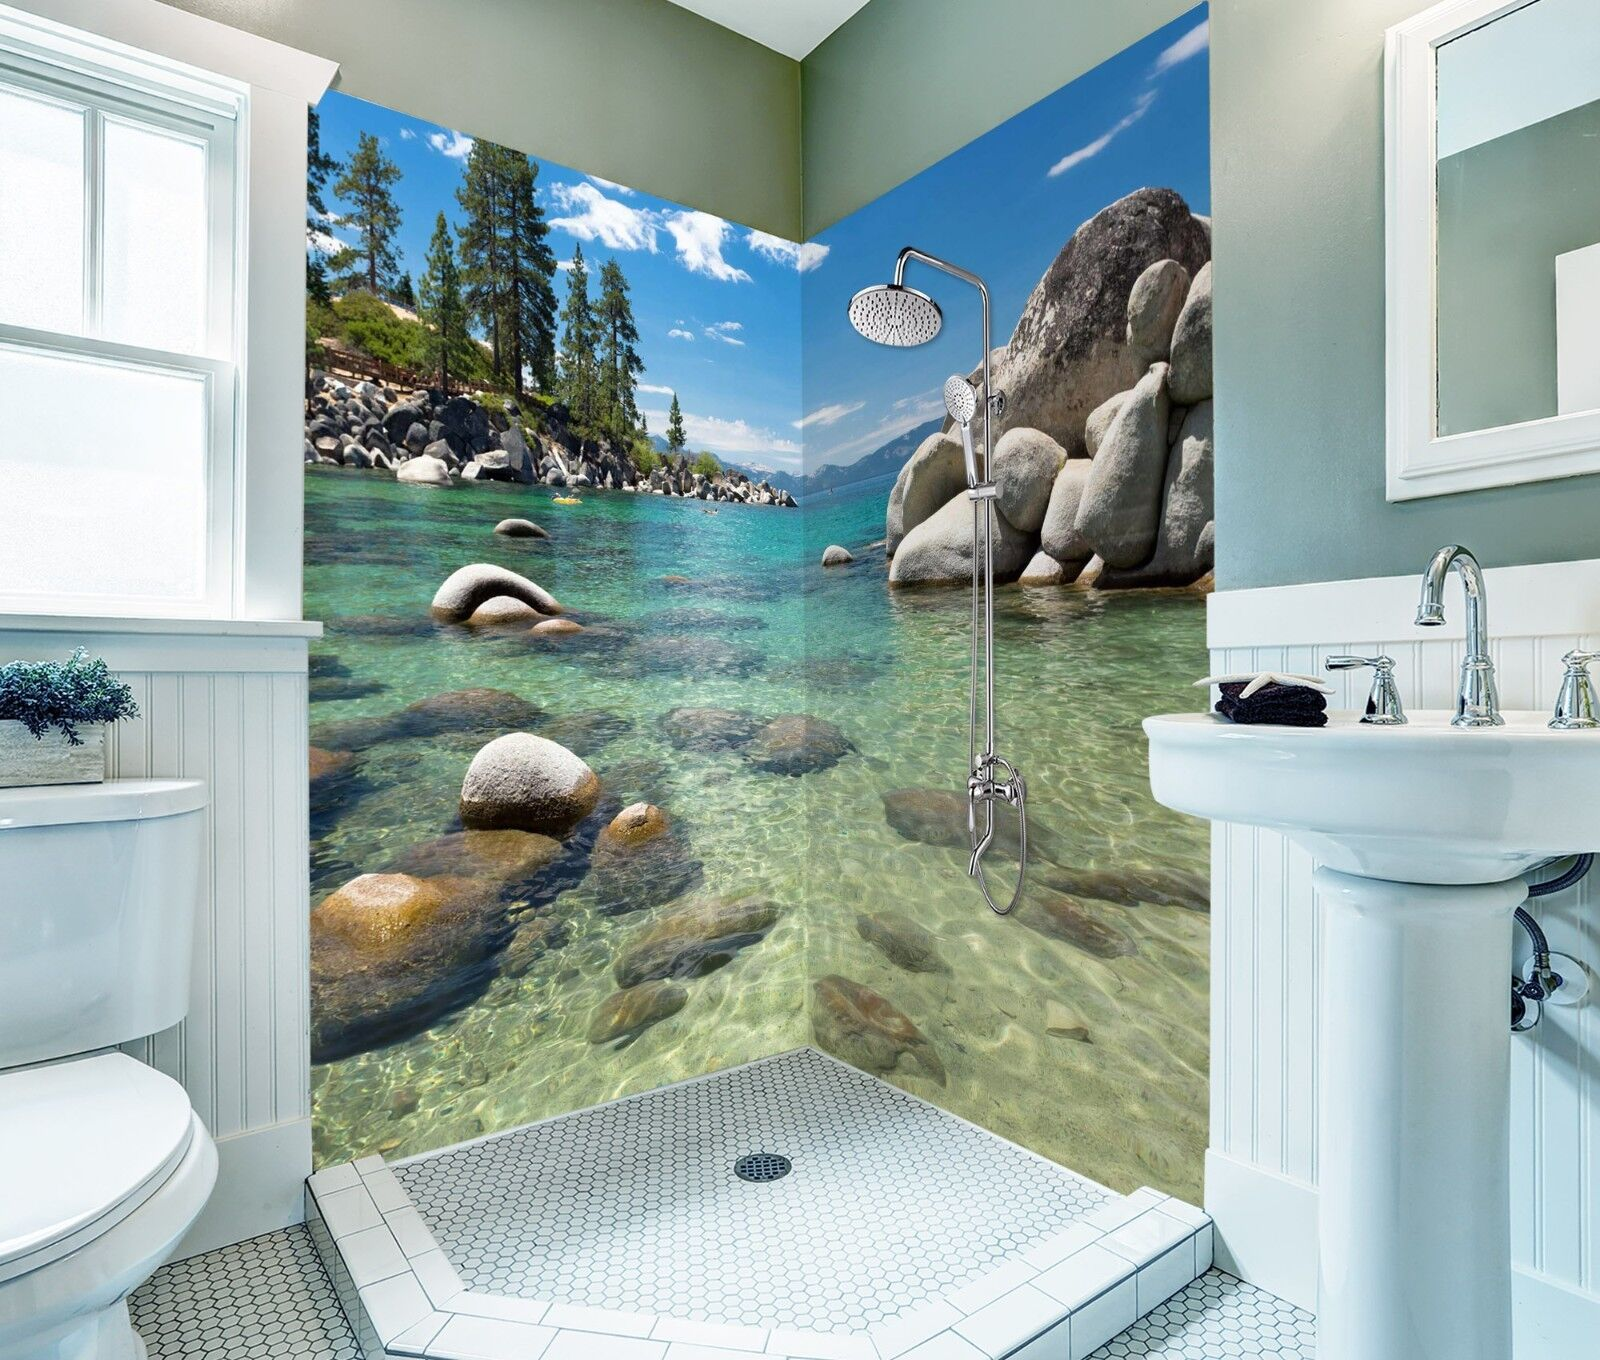 3D Tree water stone 437 WallPaper Bathroom Print Decal Wall Deco AJ WALLPAPER UK